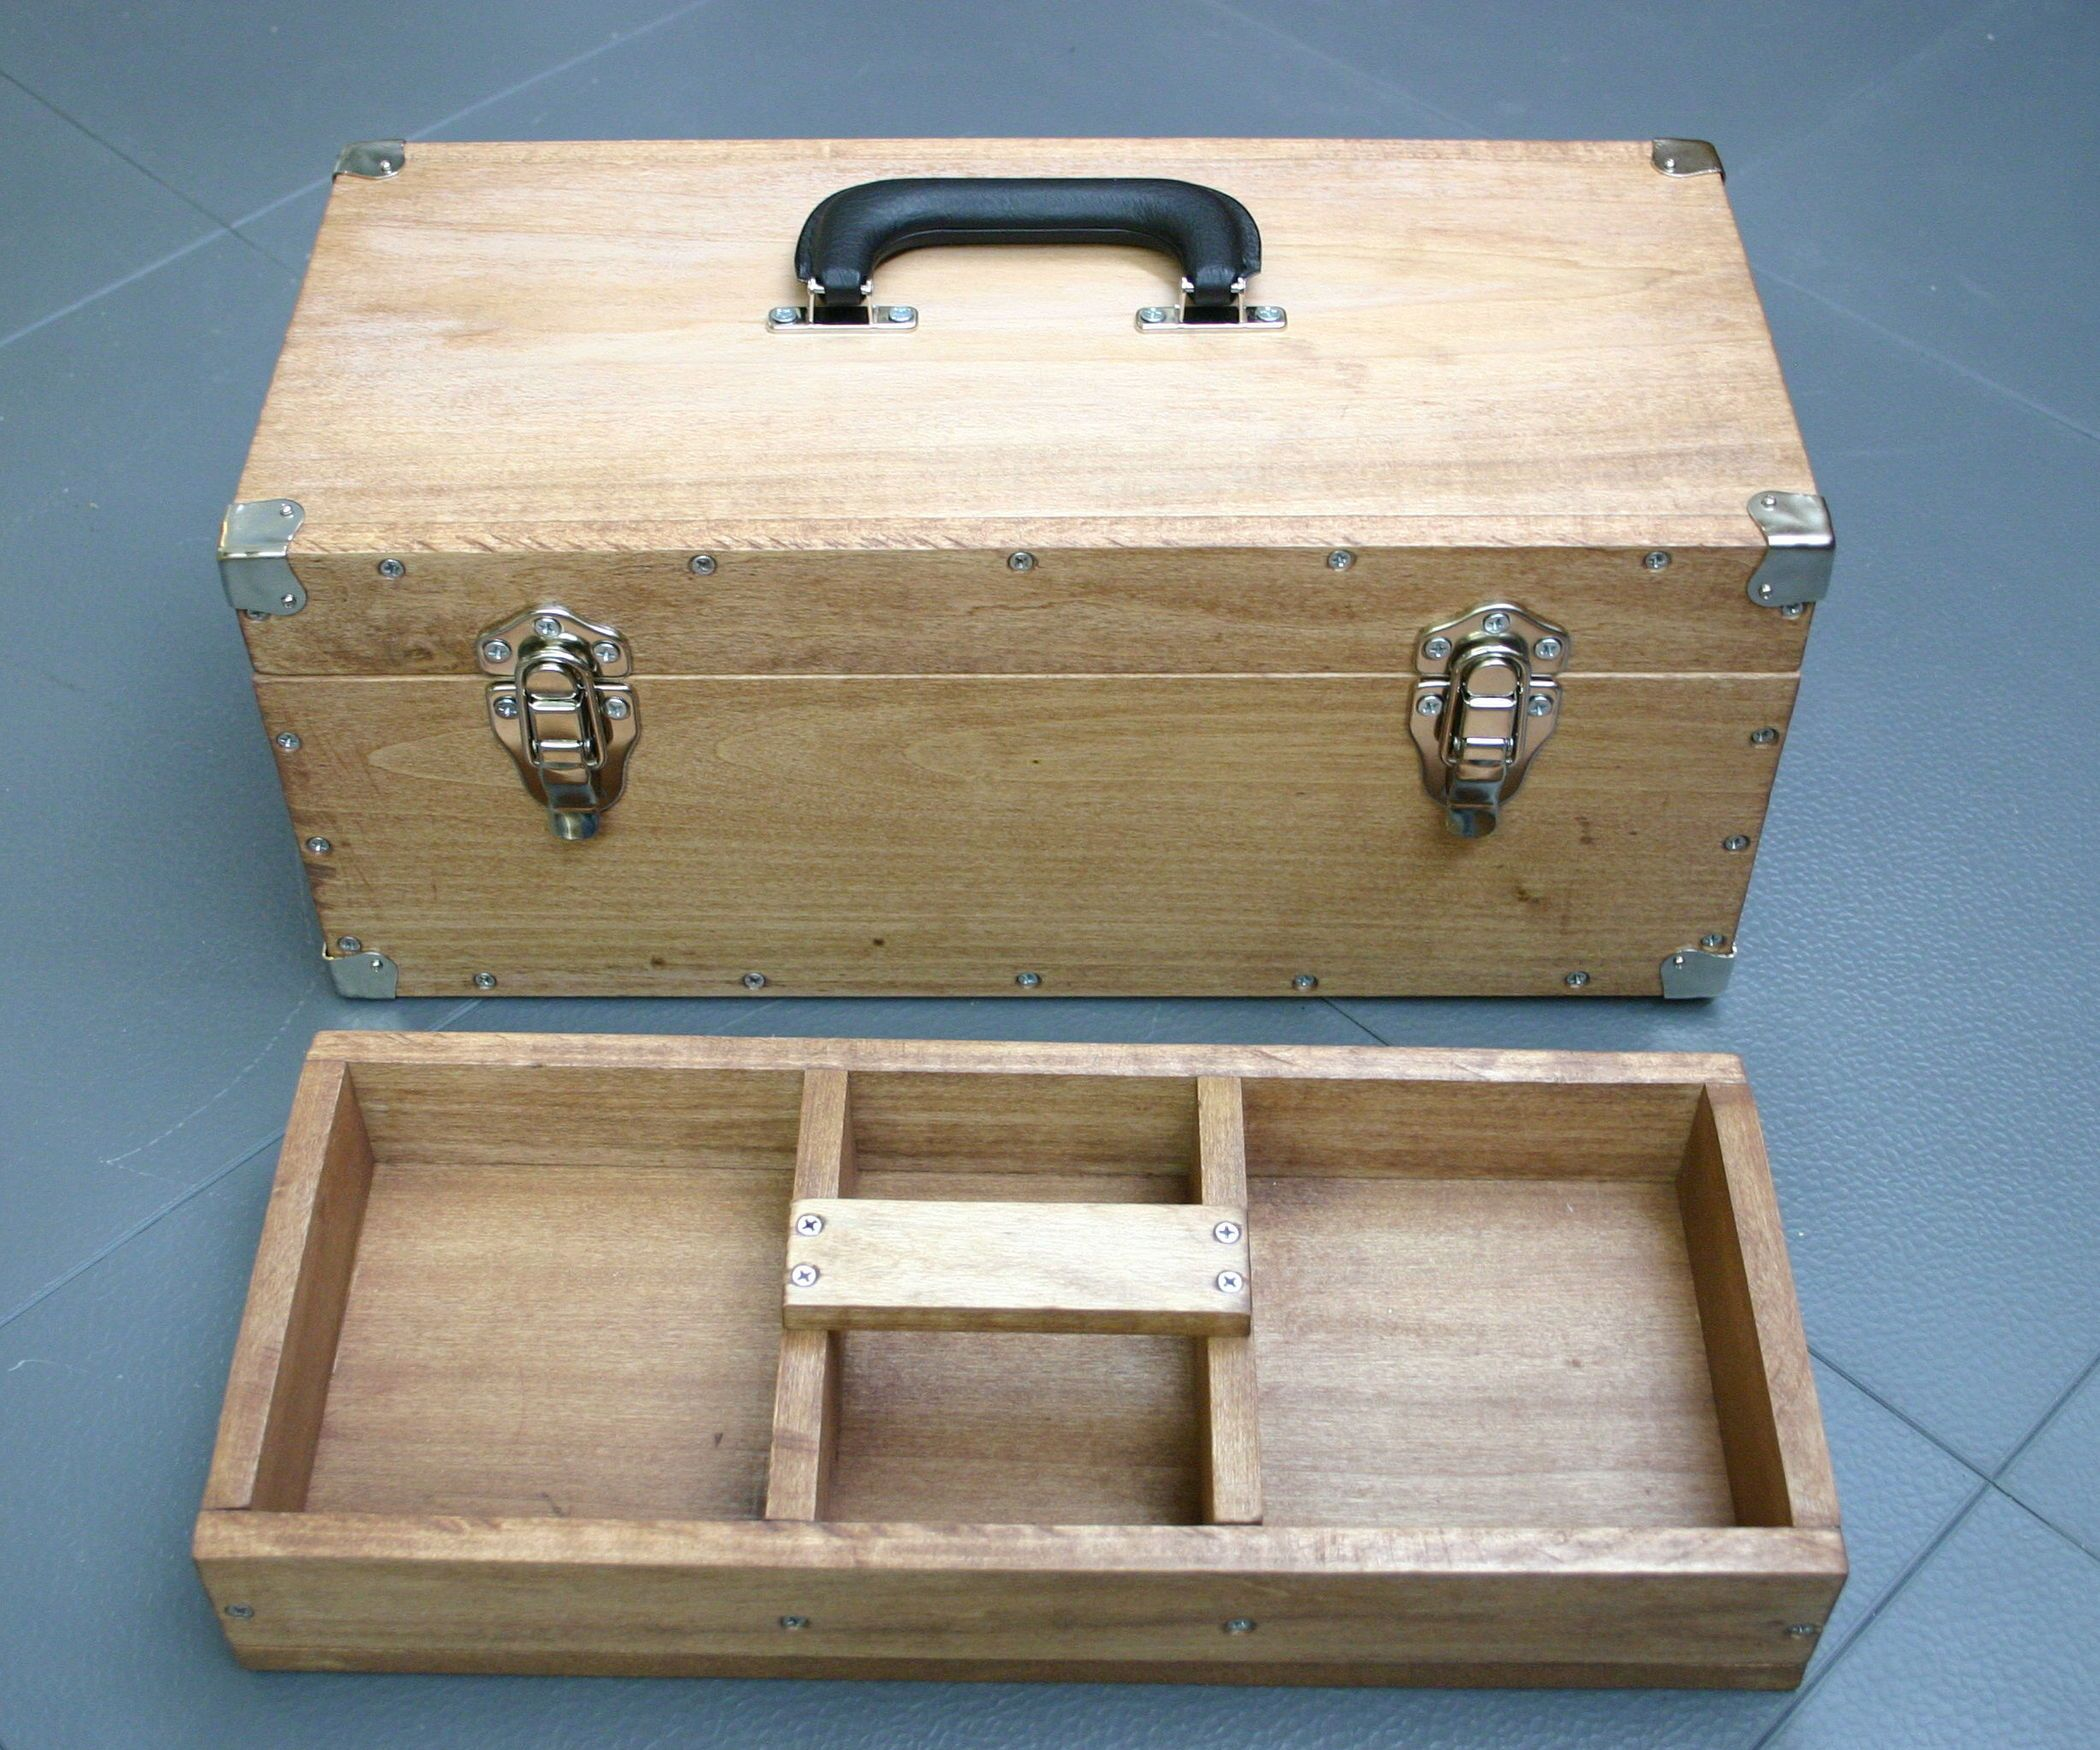 Functional and Sturdy Wooden Toolbox Tool box, Wooden